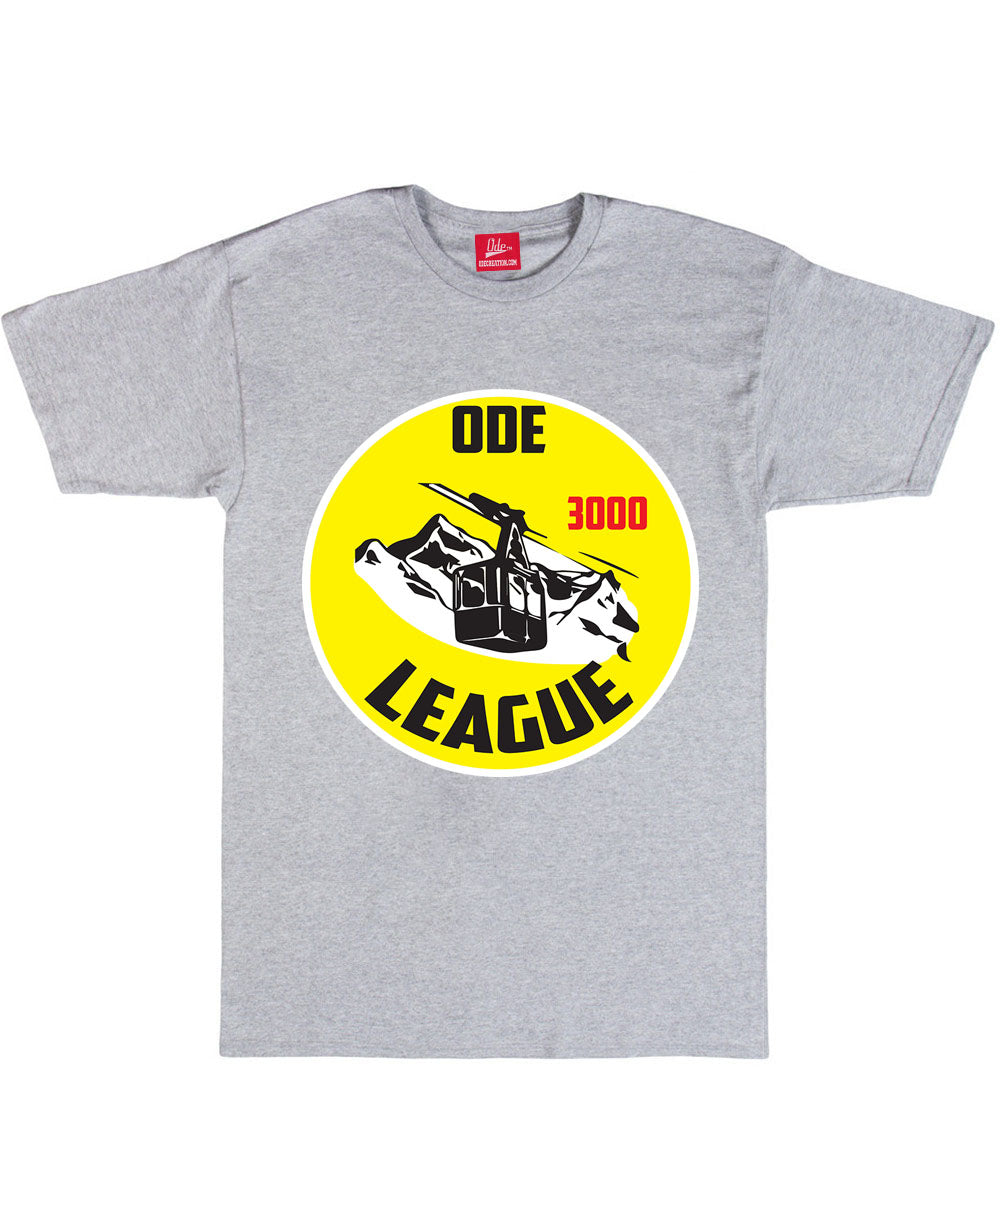 Ode Ski League 3000 T-Shirt Grey